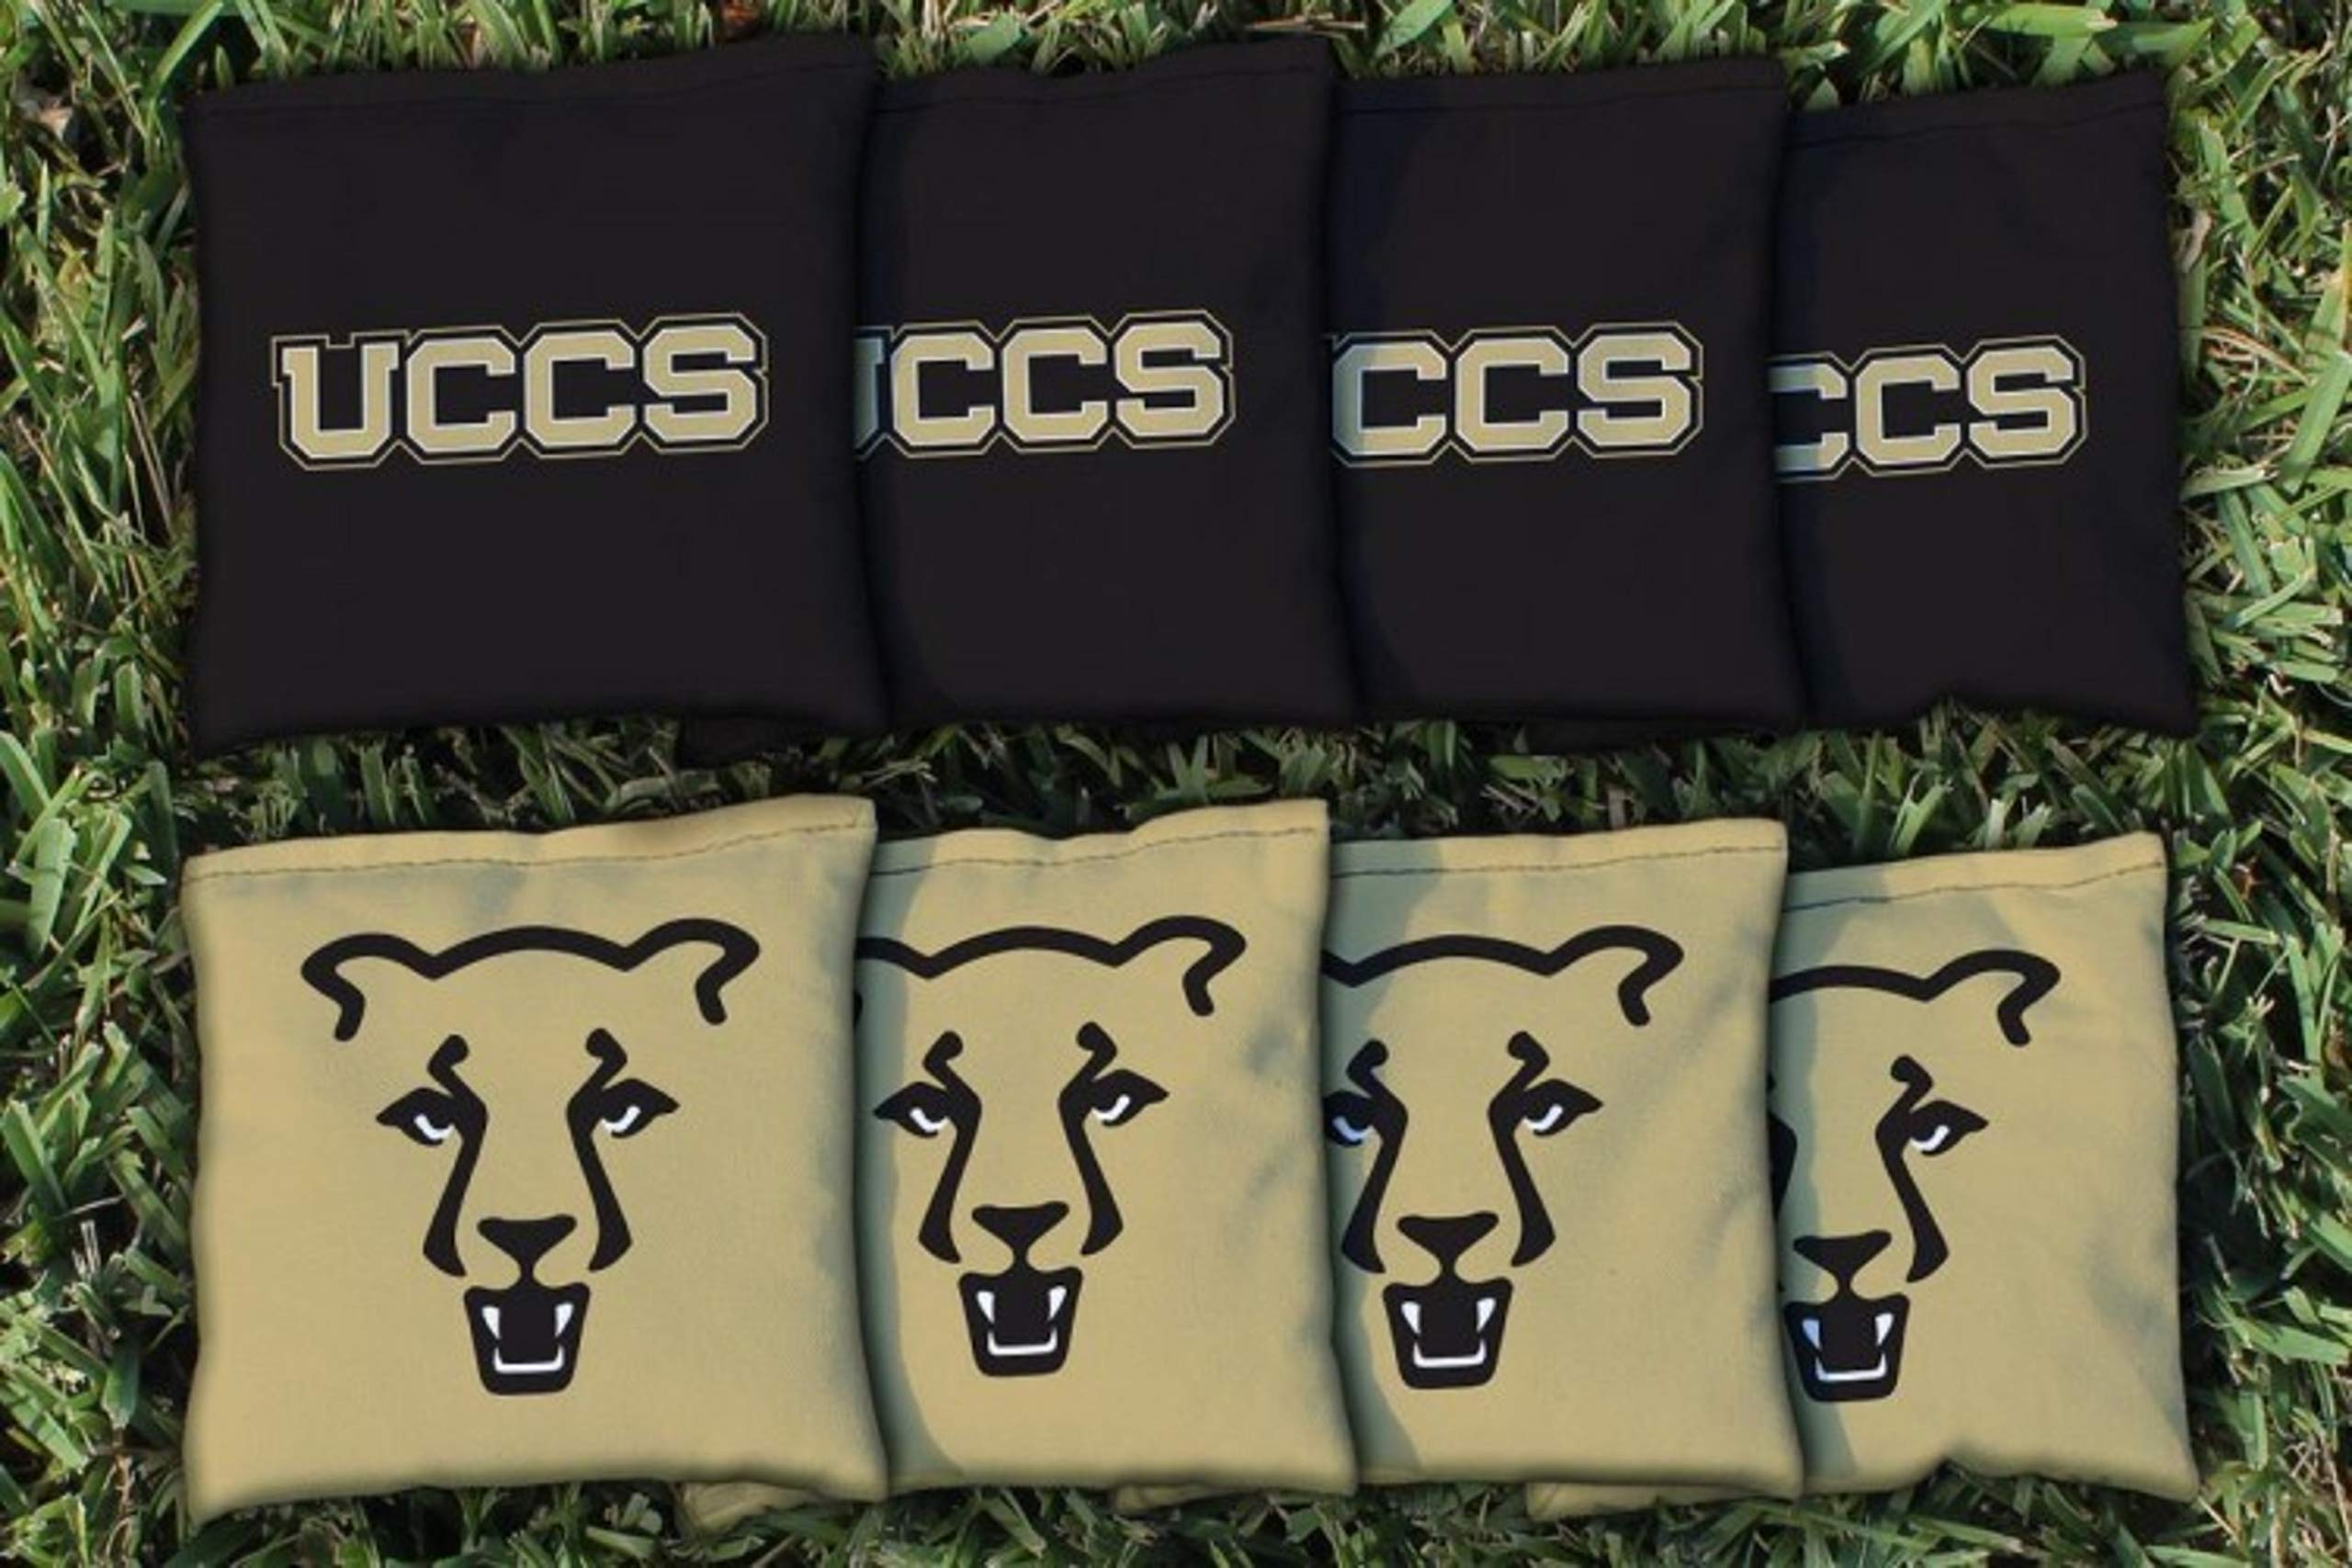 Victory Tailgate NCAA Collegiate Regulation Cornhole Game Bag Set (8 Bags Included, Corn-Filled) - Colorado Springs UCCS Mountain Lions by Victory Tailgate